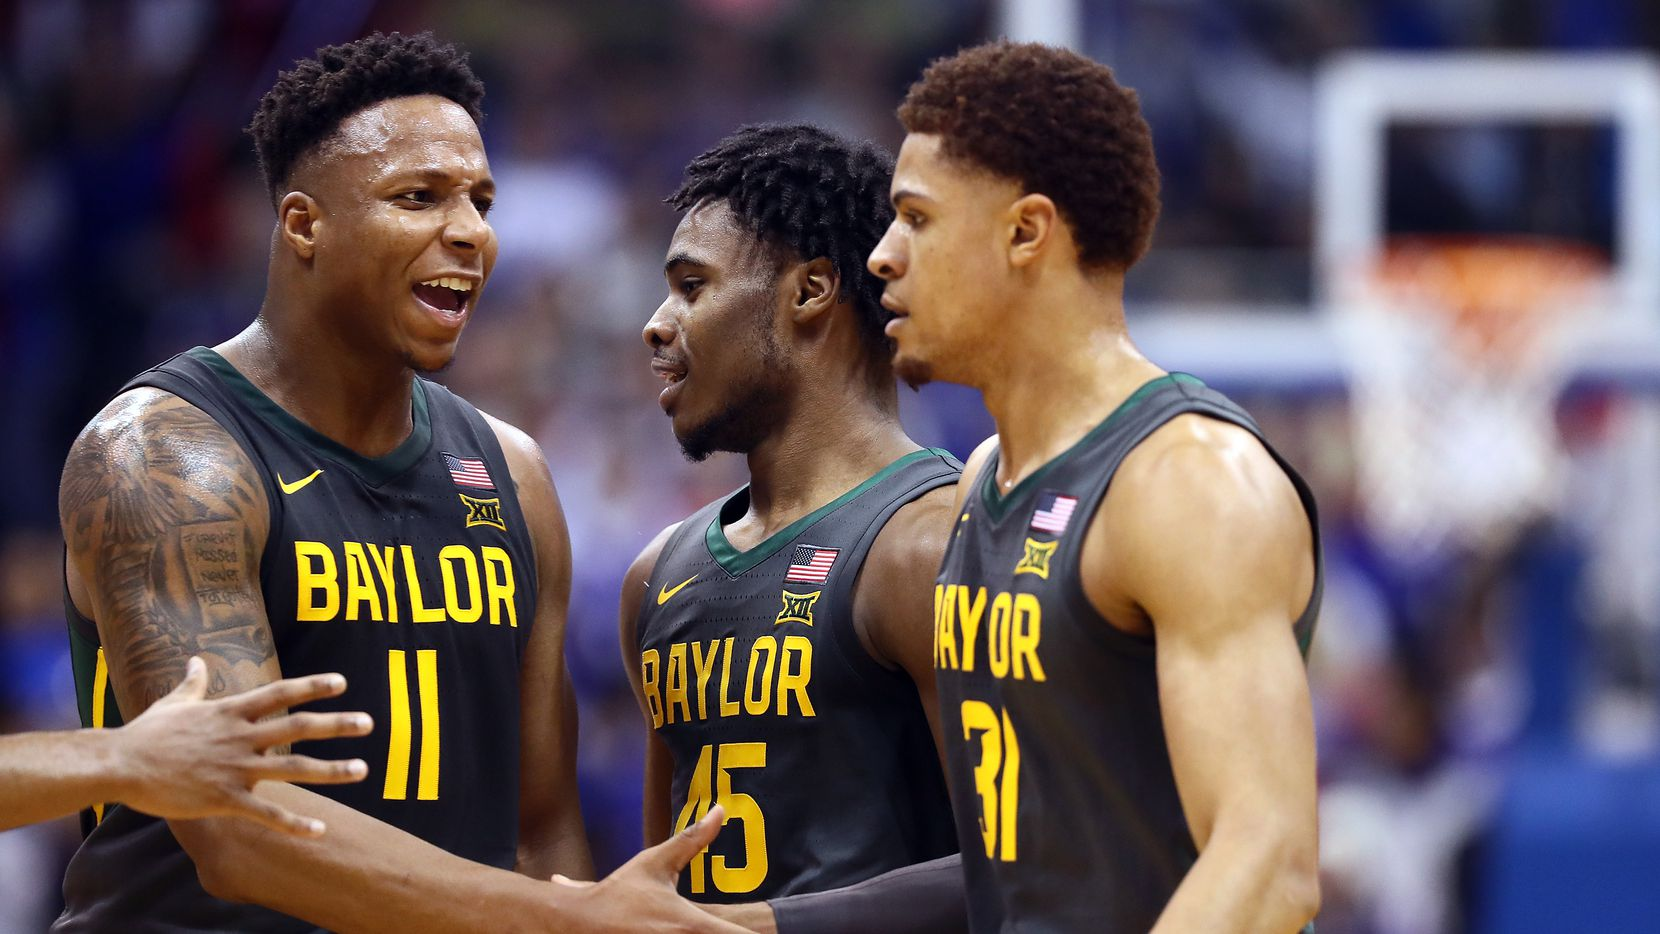 LAWRENCE, KANSAS - JANUARY 11:  Mark Vital #11 and Davion Mitchell #45 of the Baylor Bears congratulate MaCio Teague #31 after a basket during the game against the Kansas Jayhawks at Allen Fieldhouse on January 11, 2020 in Lawrence, Kansas.